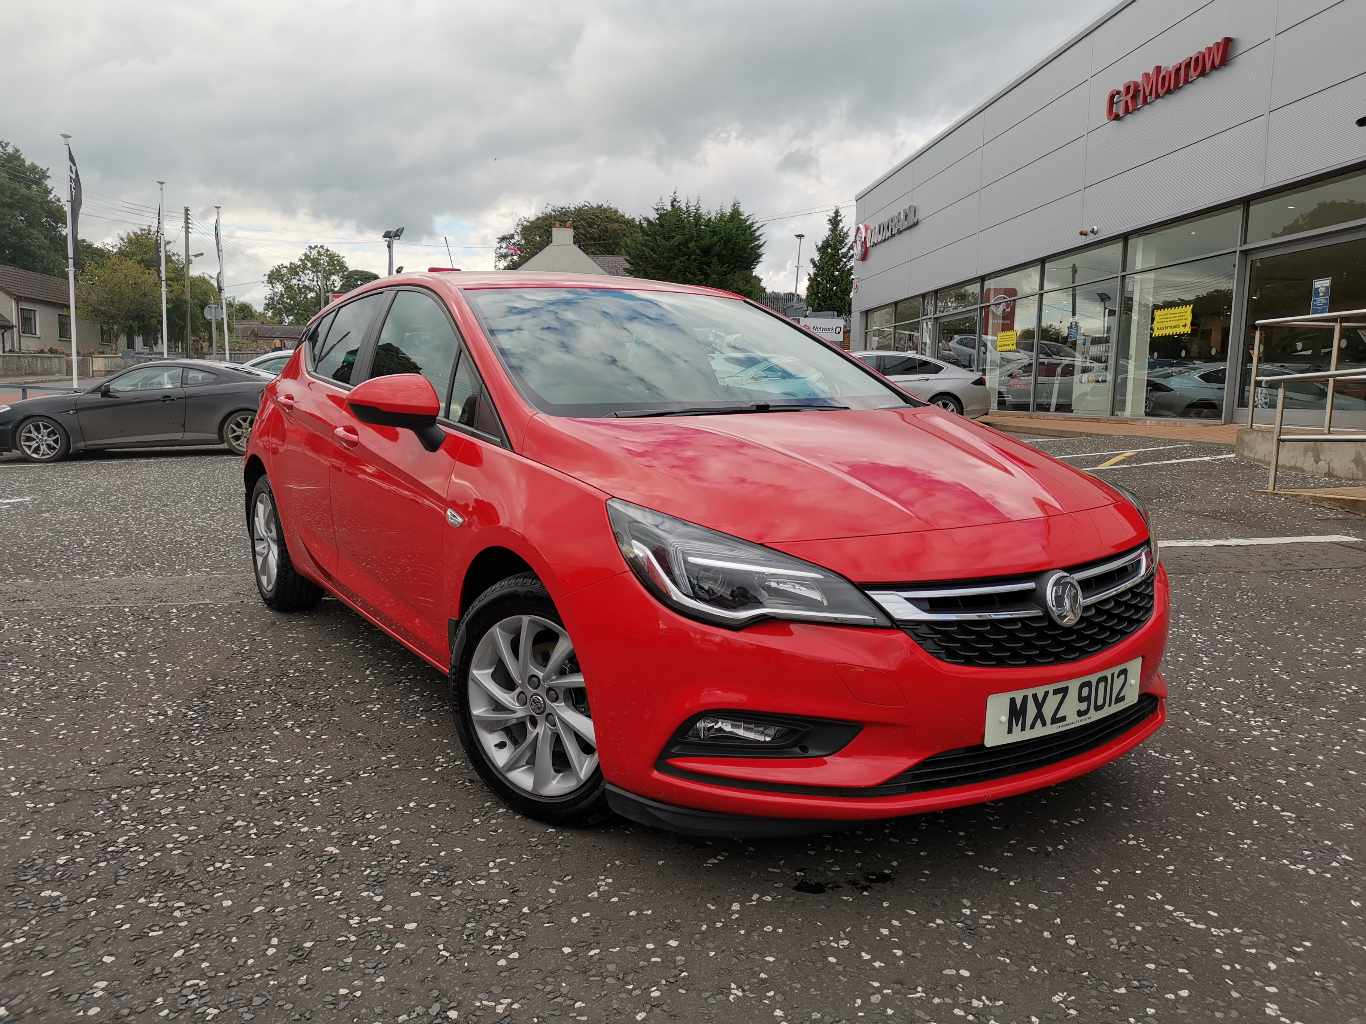 Vauxhall Astra Design 1.6CDTI 110ps 5dr S/S